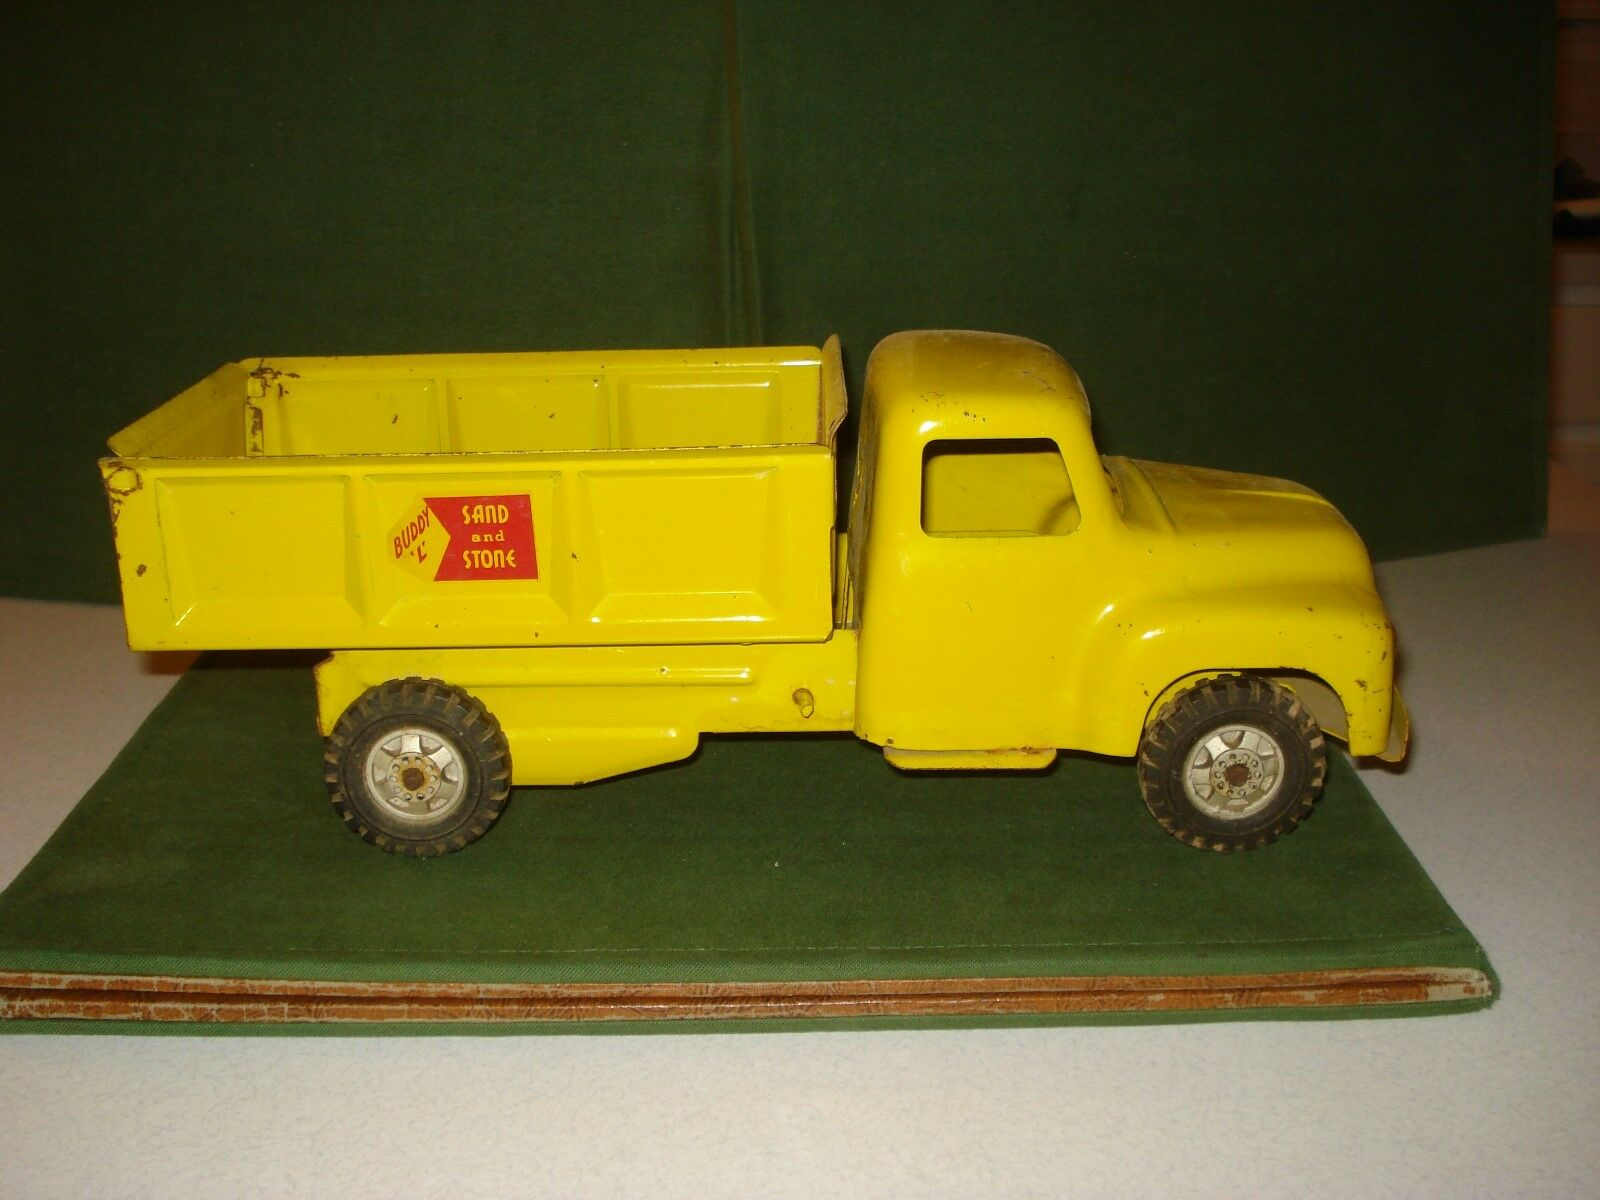 1950's BUDDY L SAND AND STONE Gelb DUMP TRUCK, NICE SHAPE.